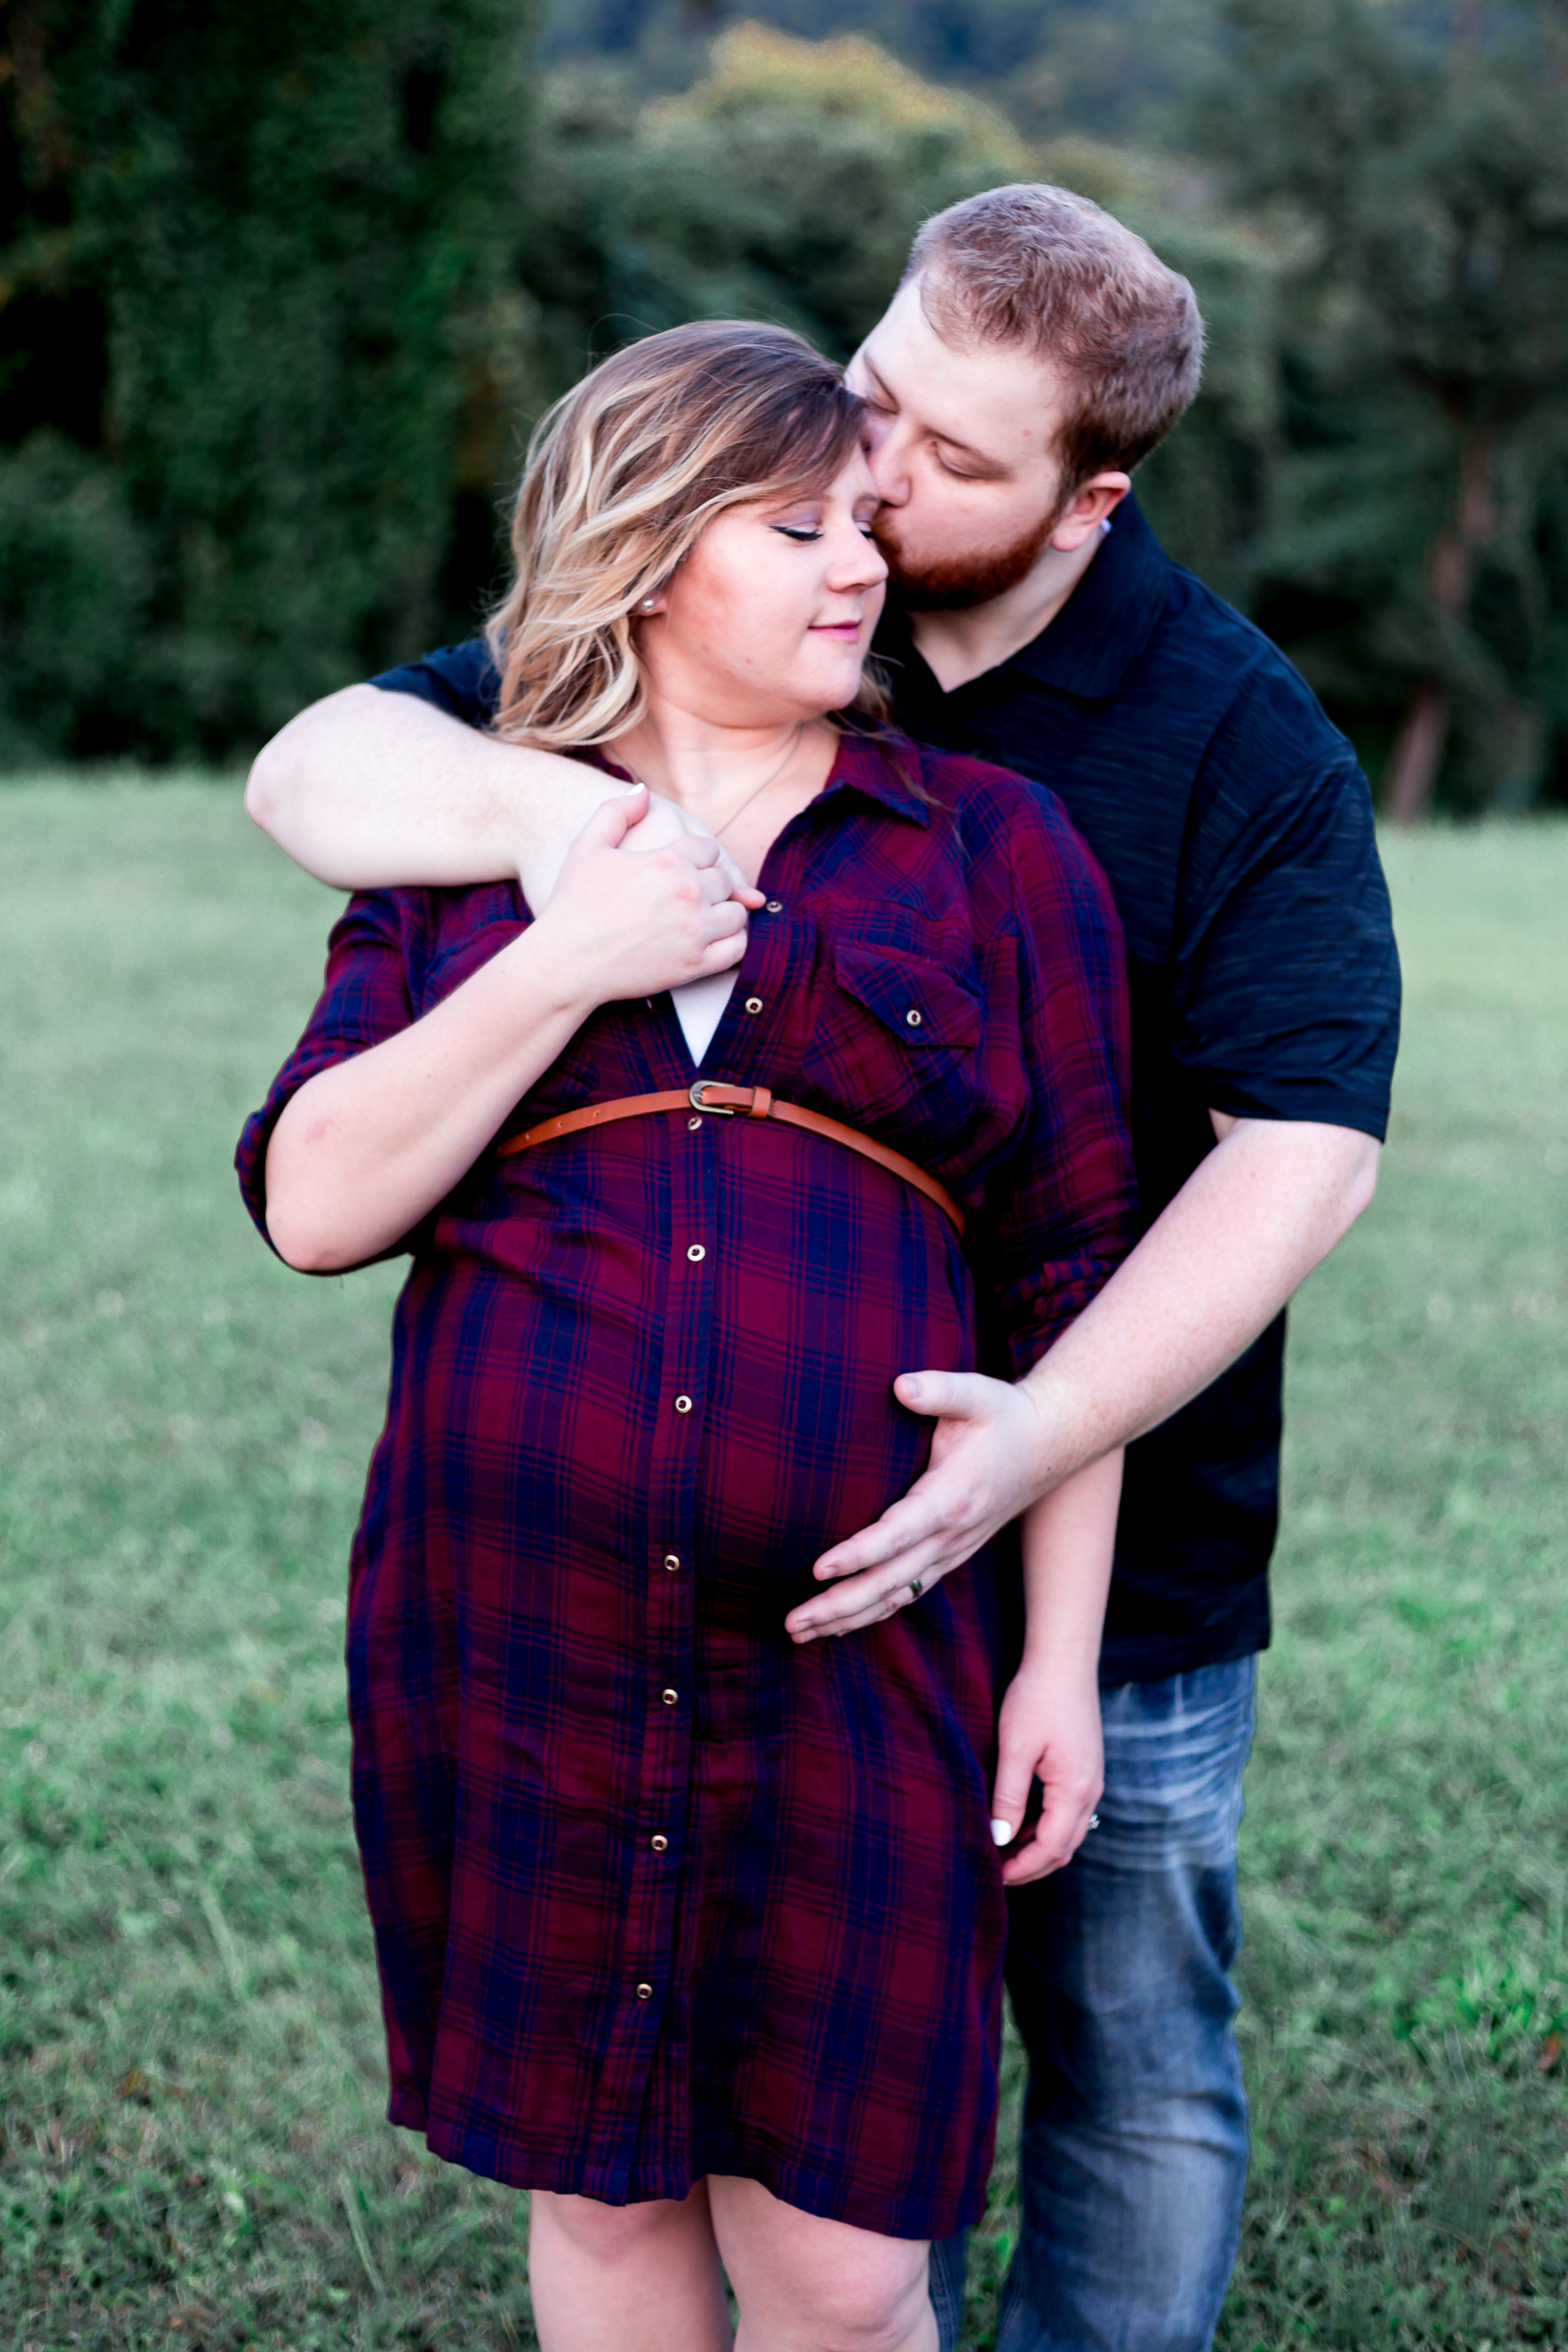 mmw-lynchburg-maternity-photo-session-26.jpg